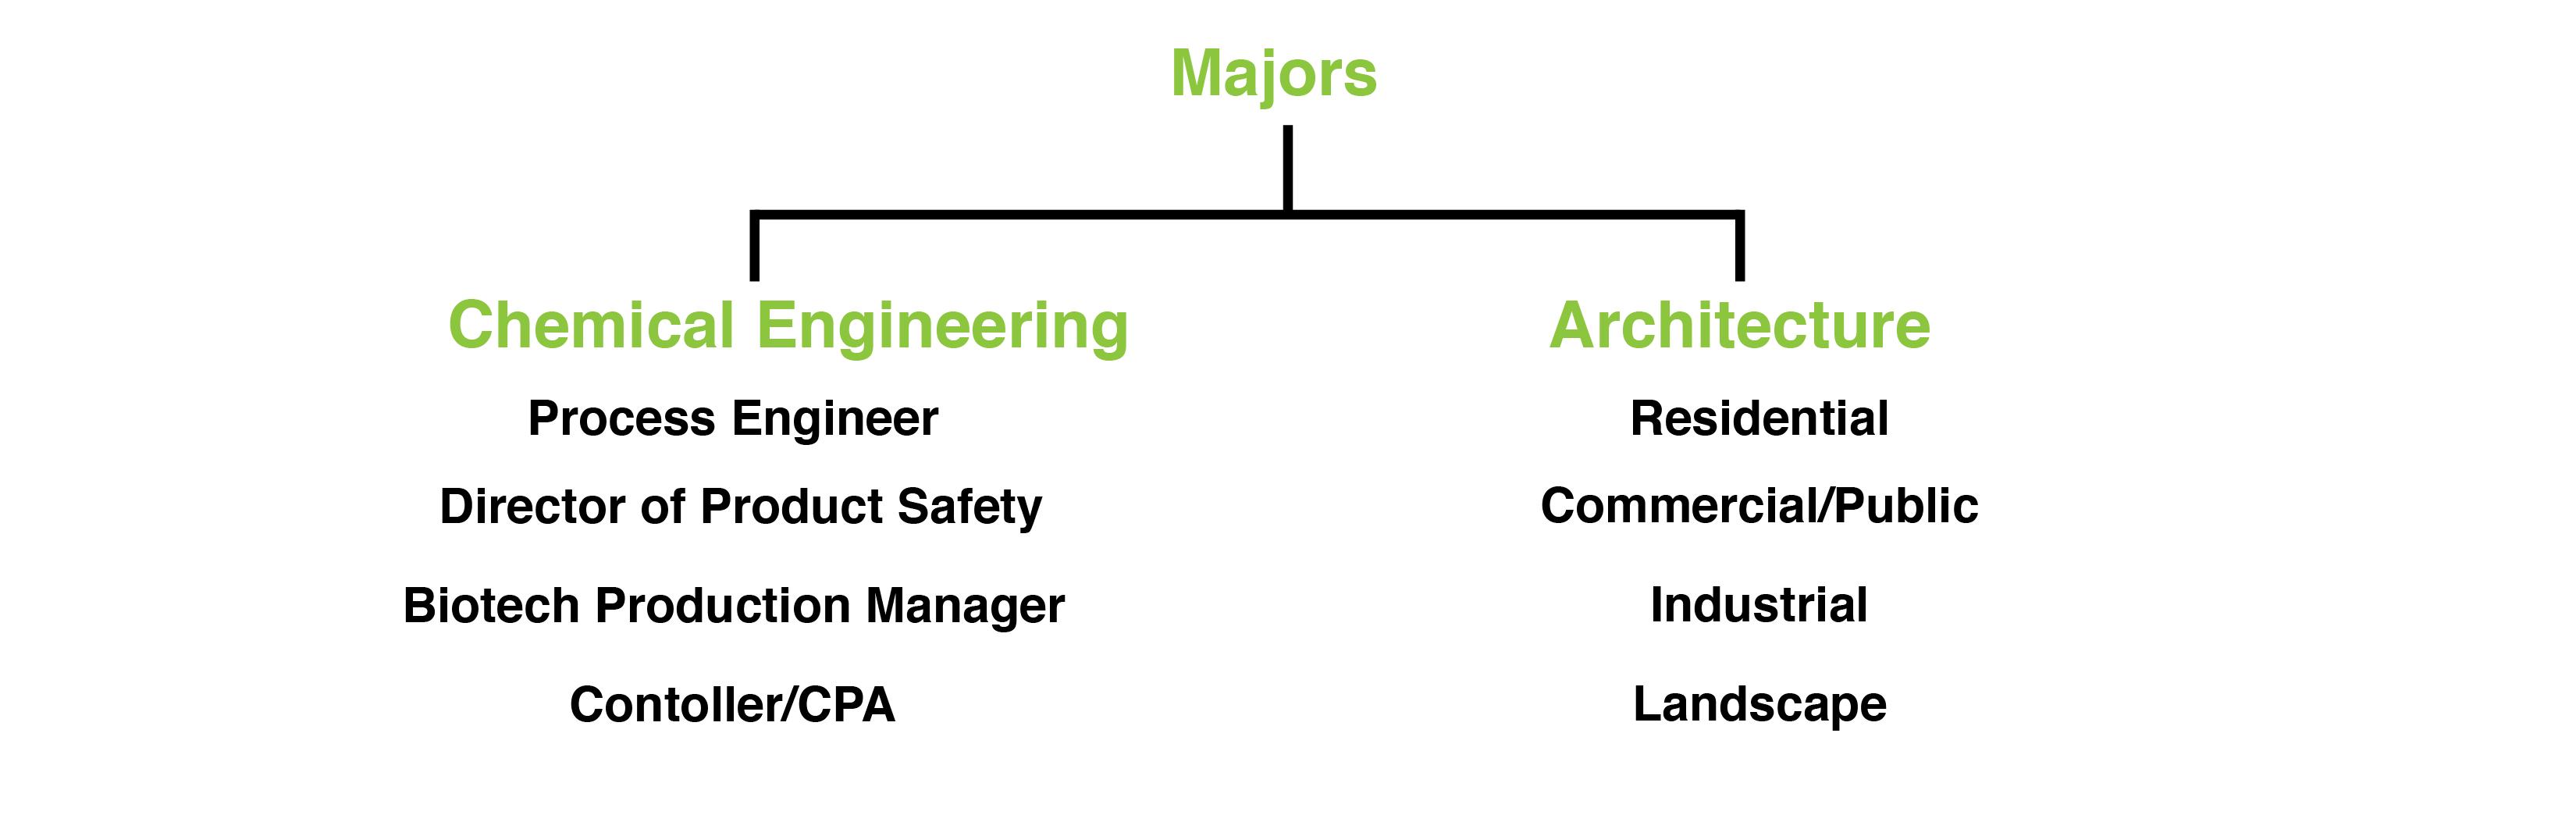 types of careers-01